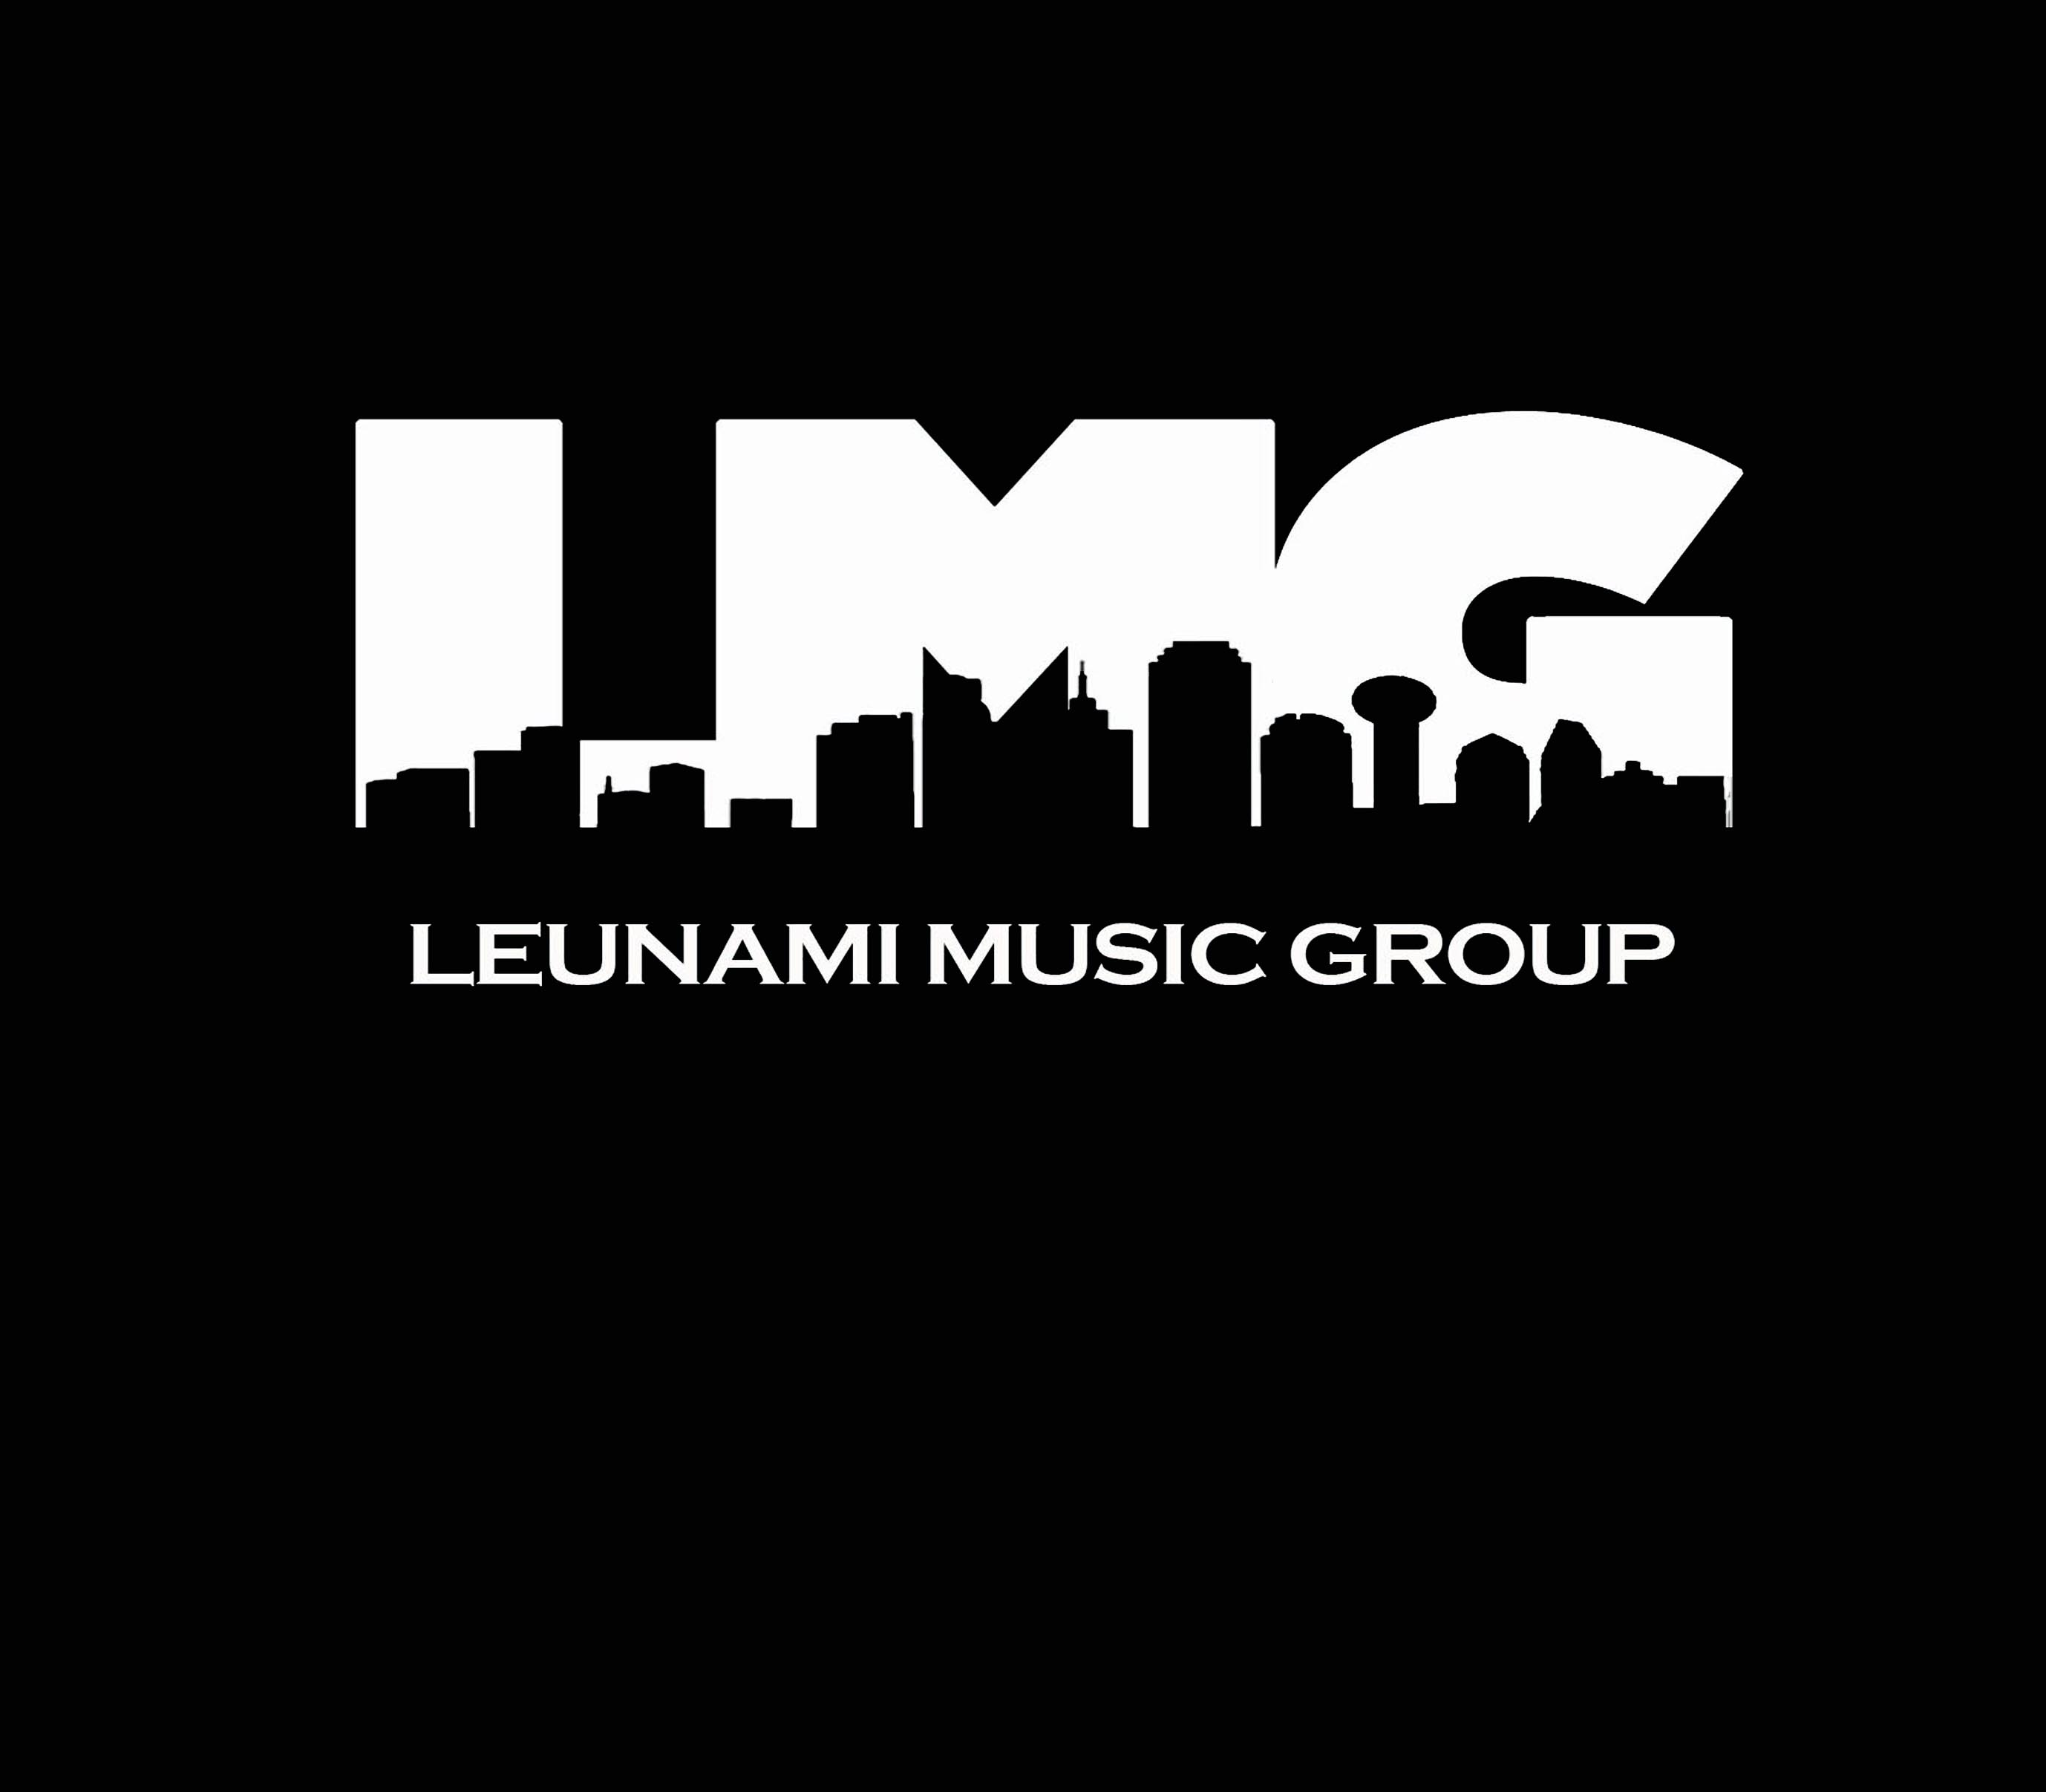 Leunami Music Group